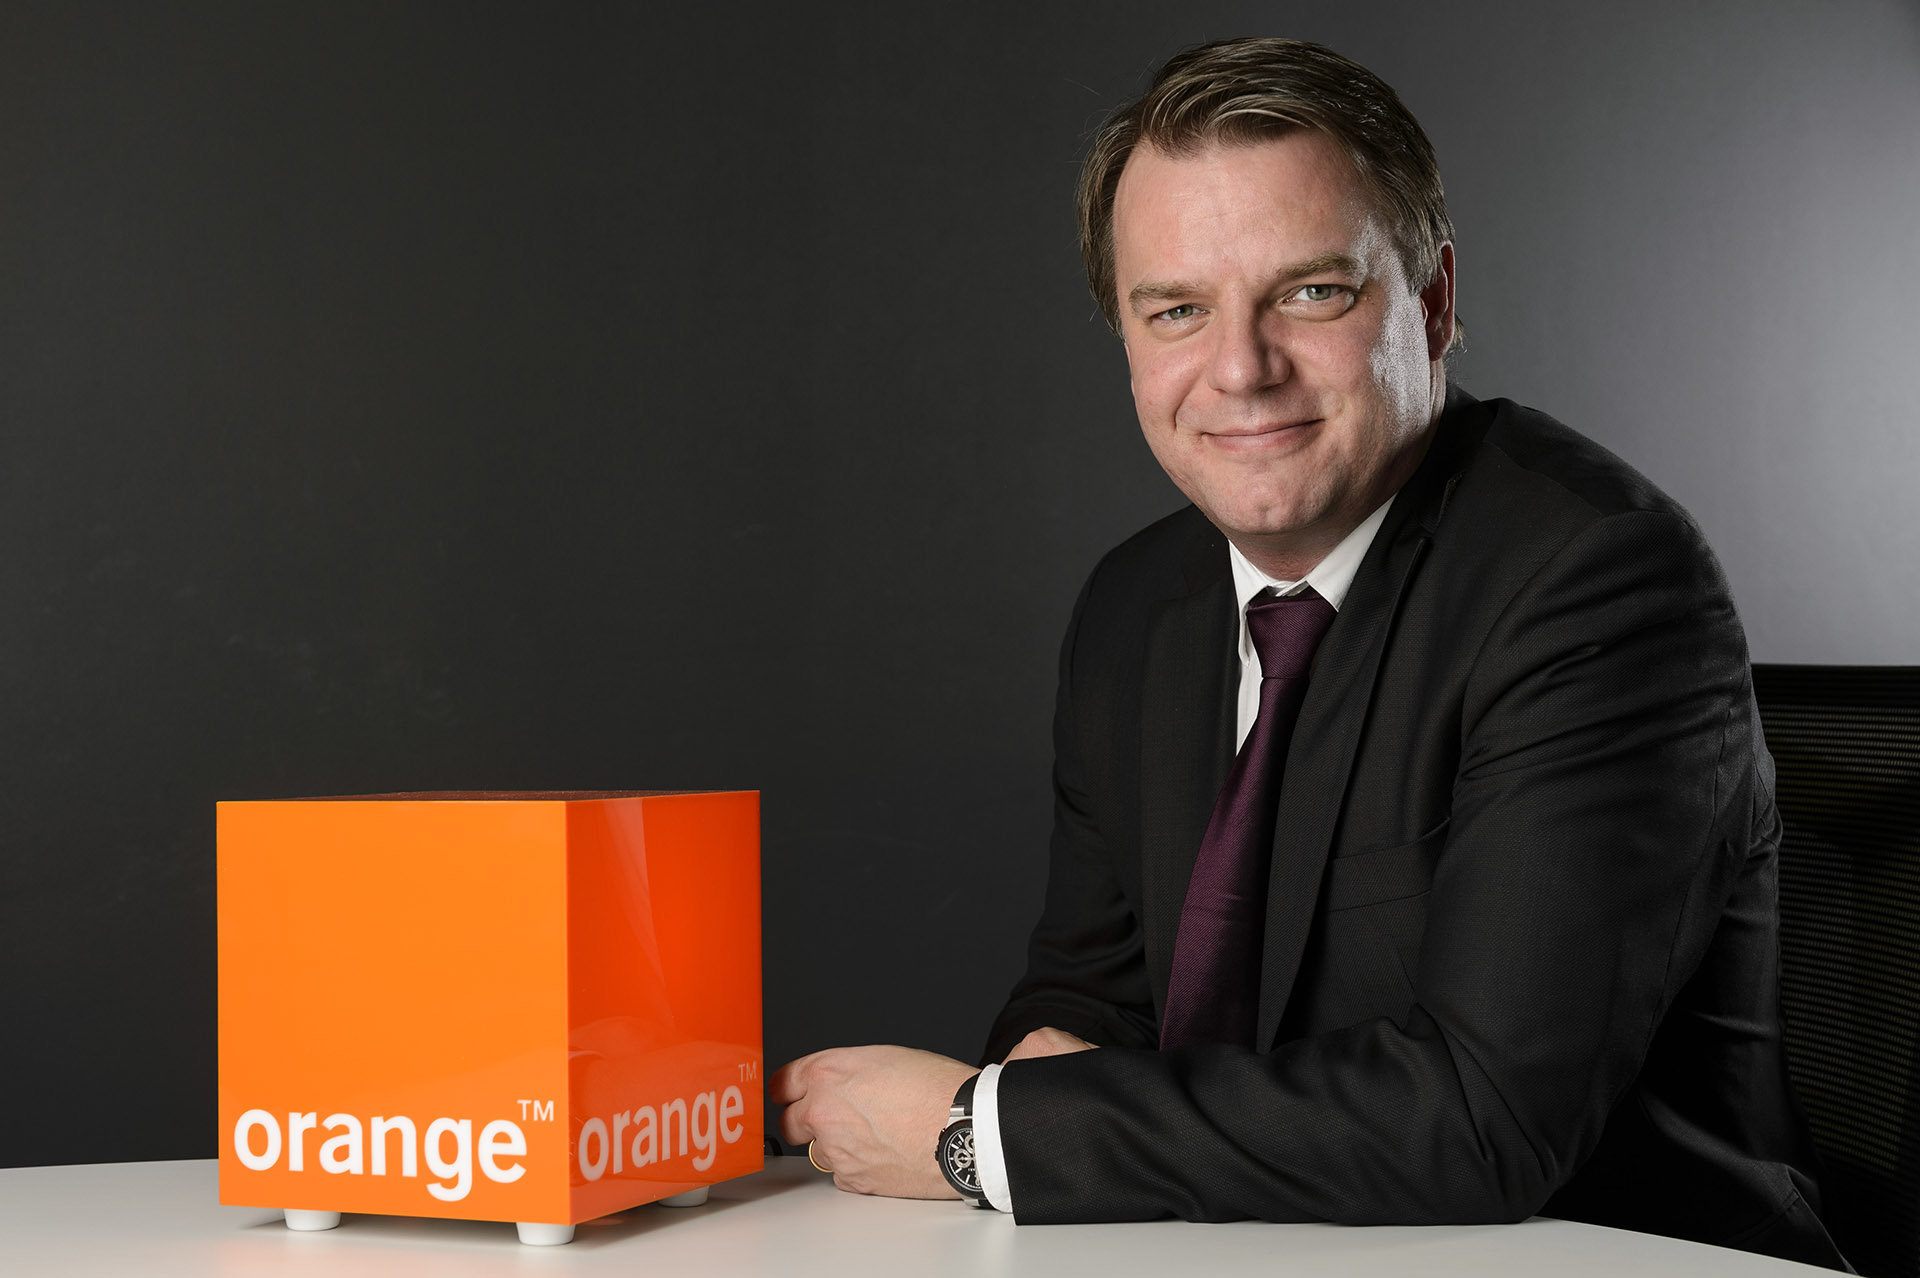 Johan Andsjo CEO Orange - Renens - 2013